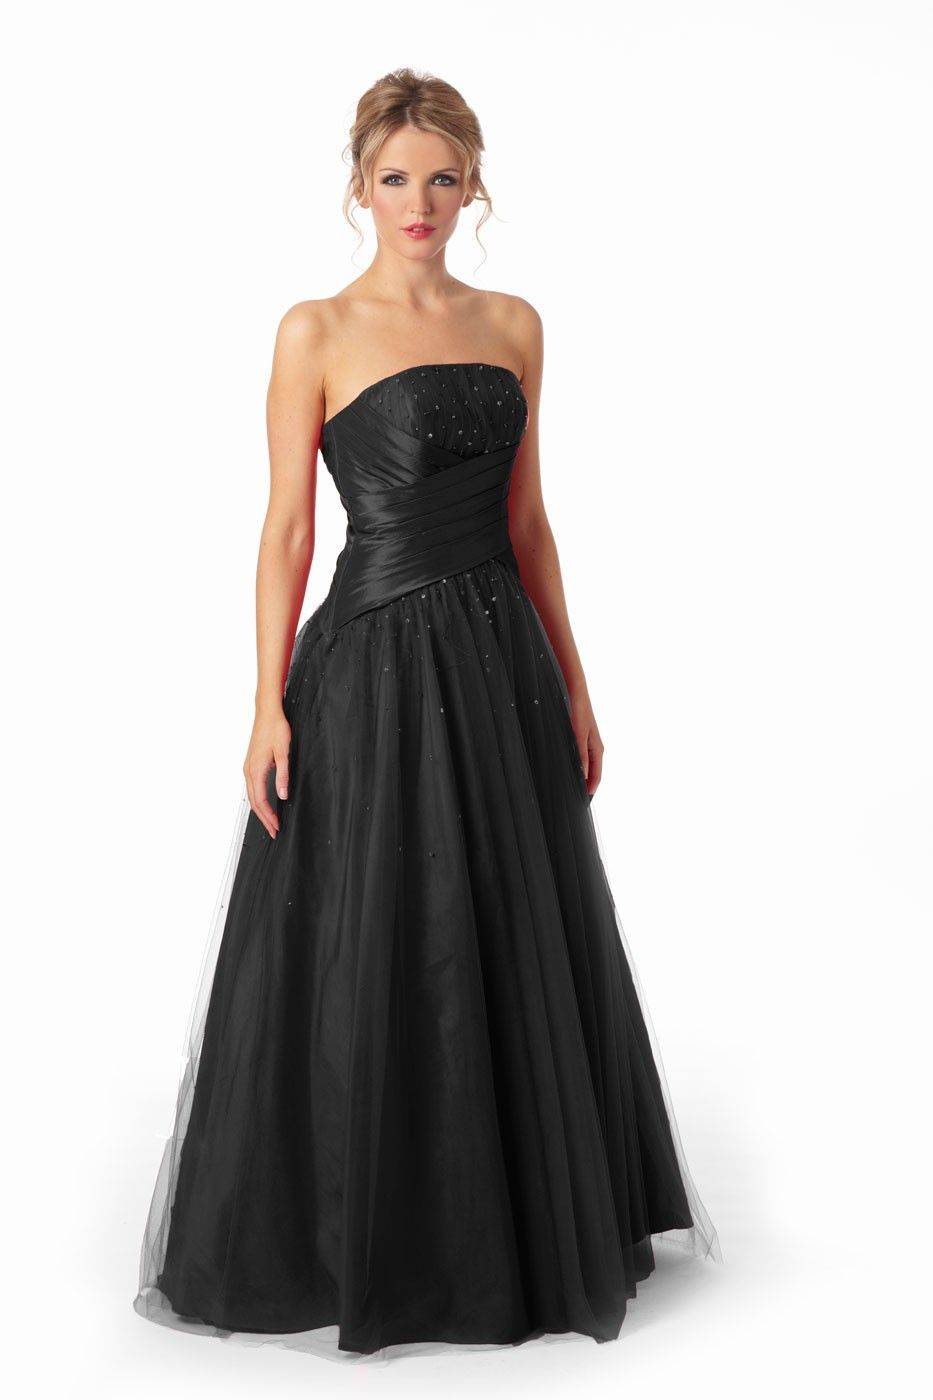 Black gloves evening wear - Ava A Stunning Black Tulle Prom Dress Add High Opera Gloves For A Classic Hepburn